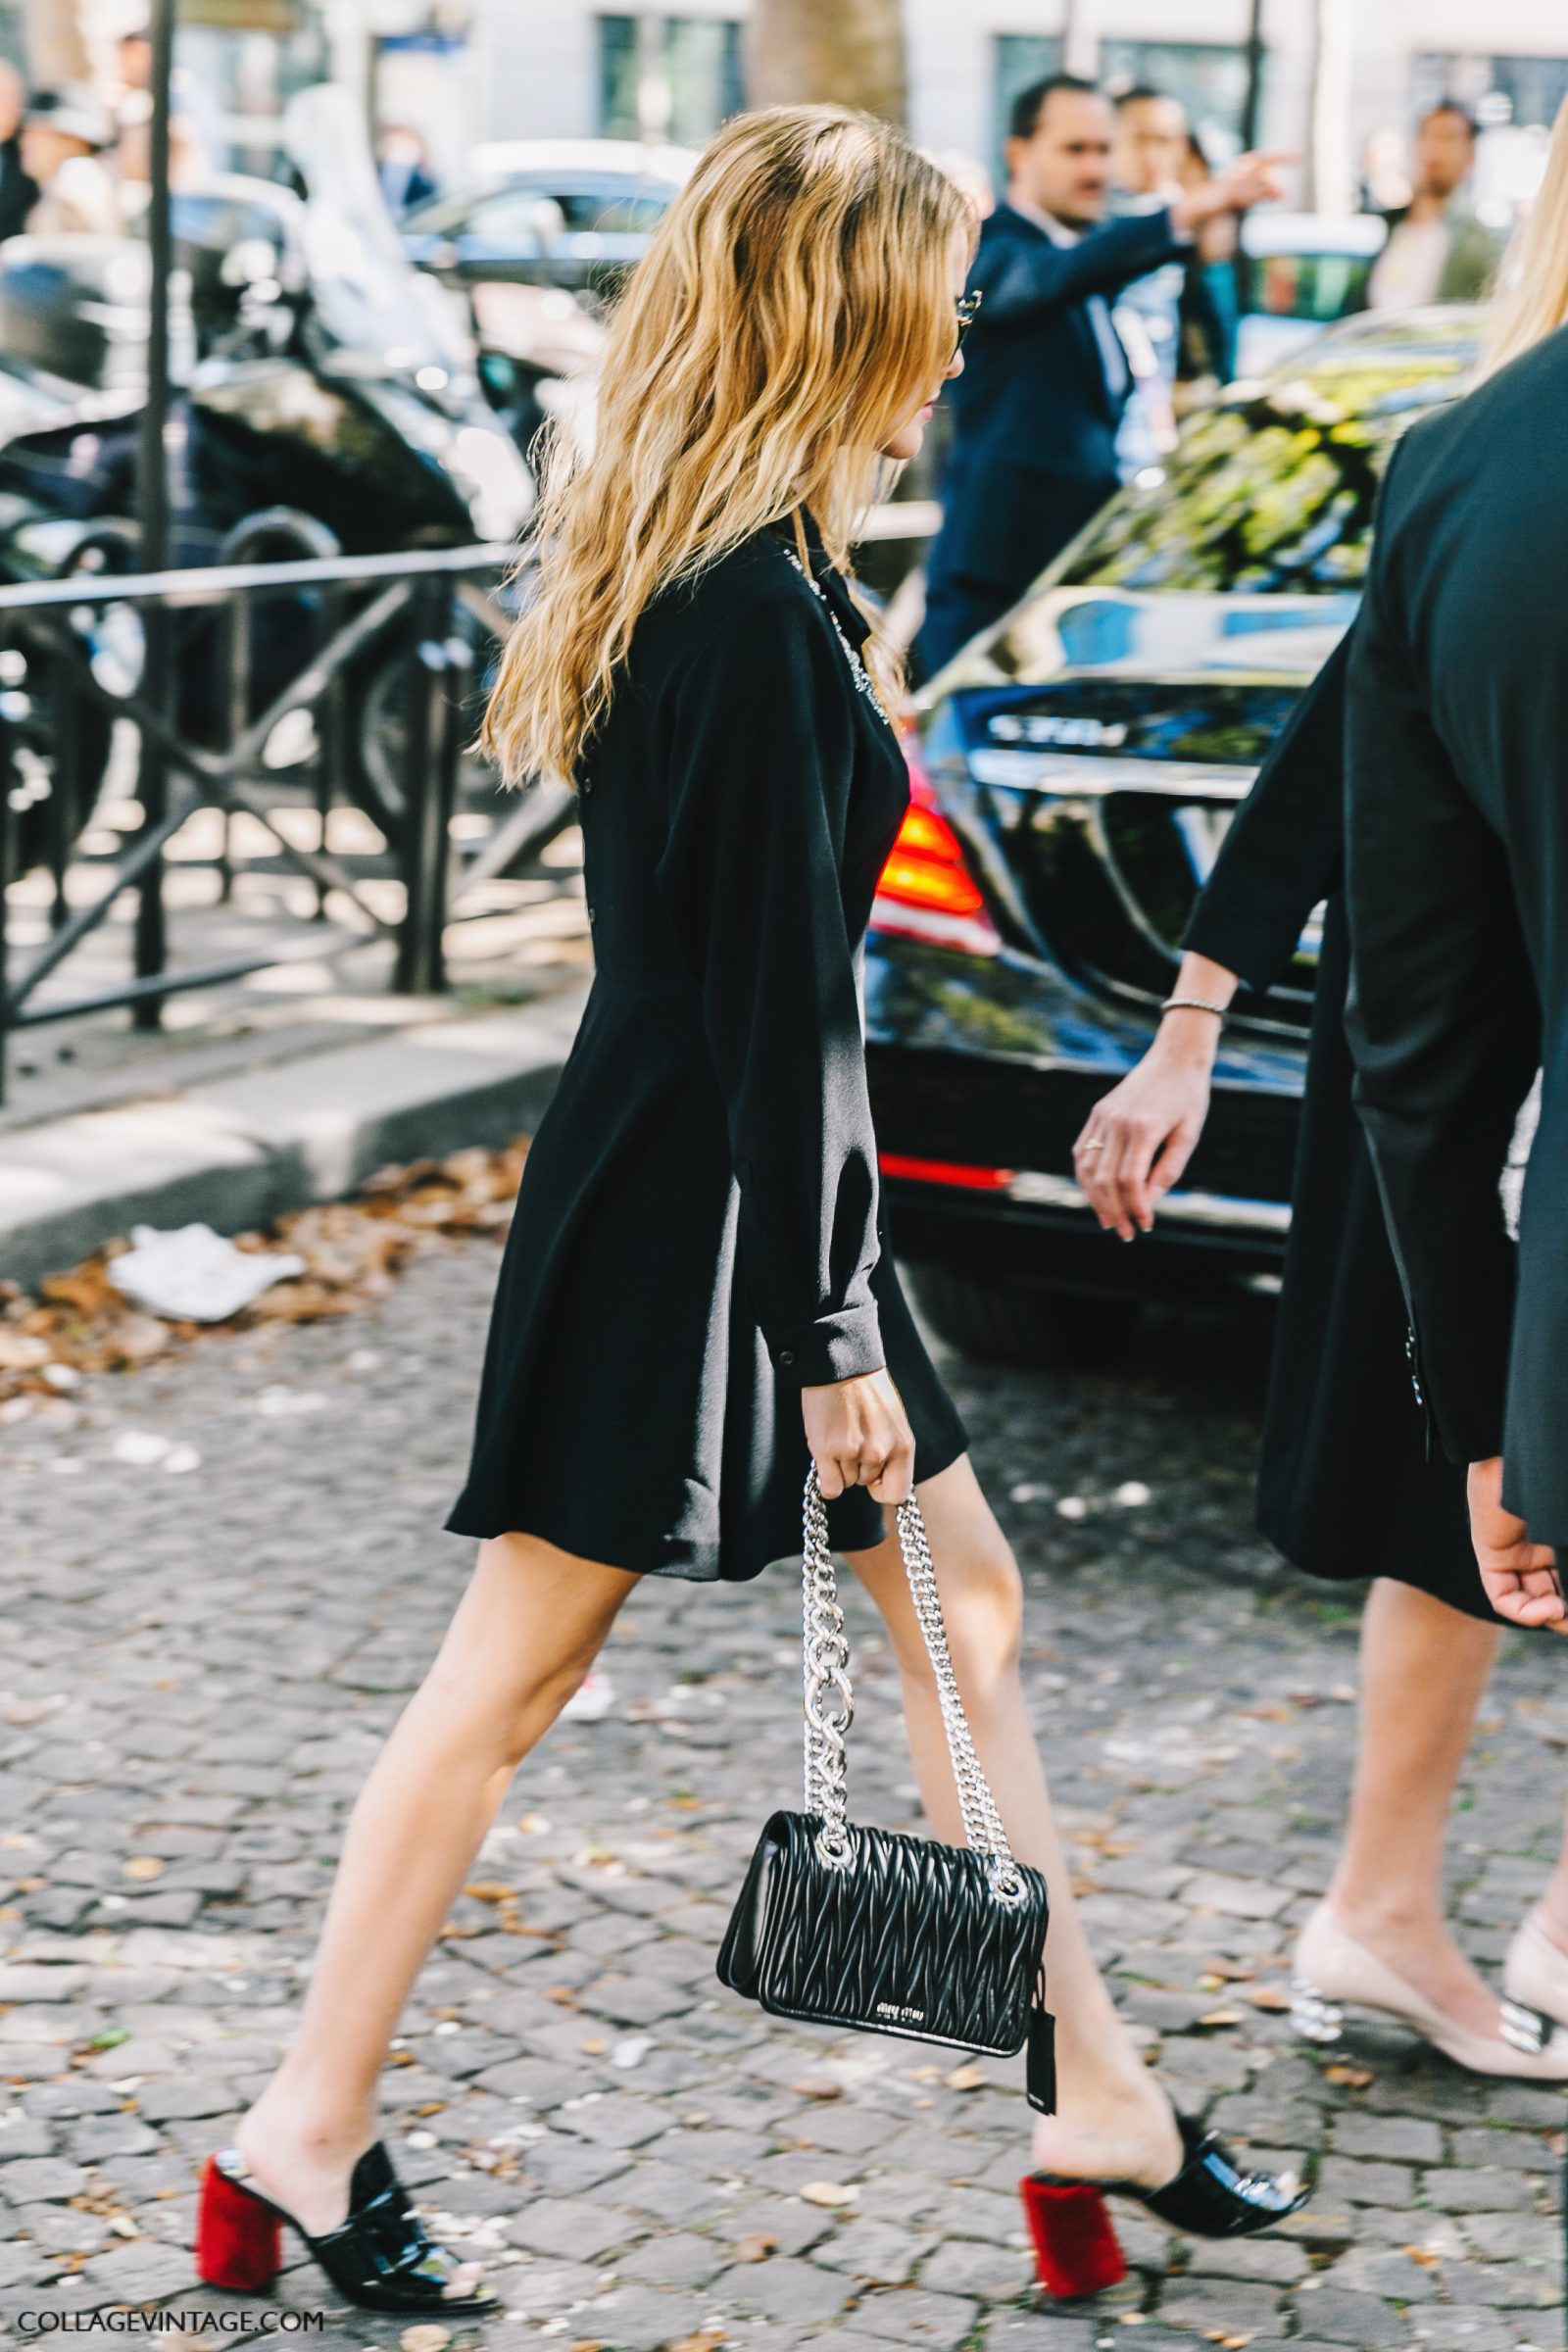 pfw-paris_fashion_week_ss17-street_style-outfit-collage_vintage-louis_vuitton-miu_miu-66